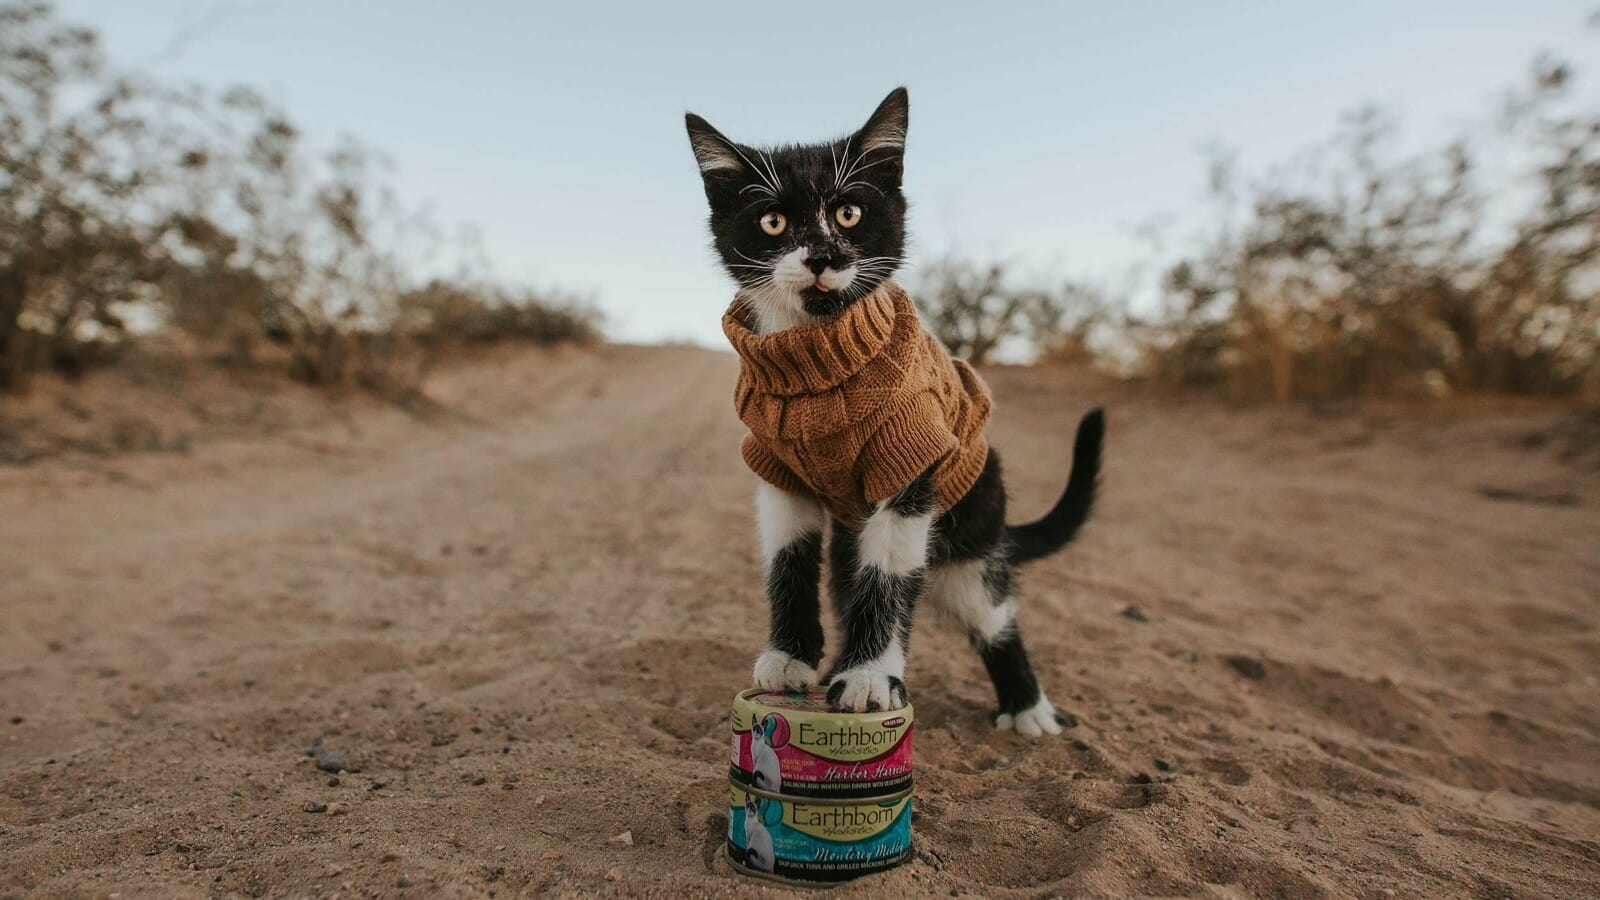 Cat with front paws on top of Earthborn wet cat food cans in the desert